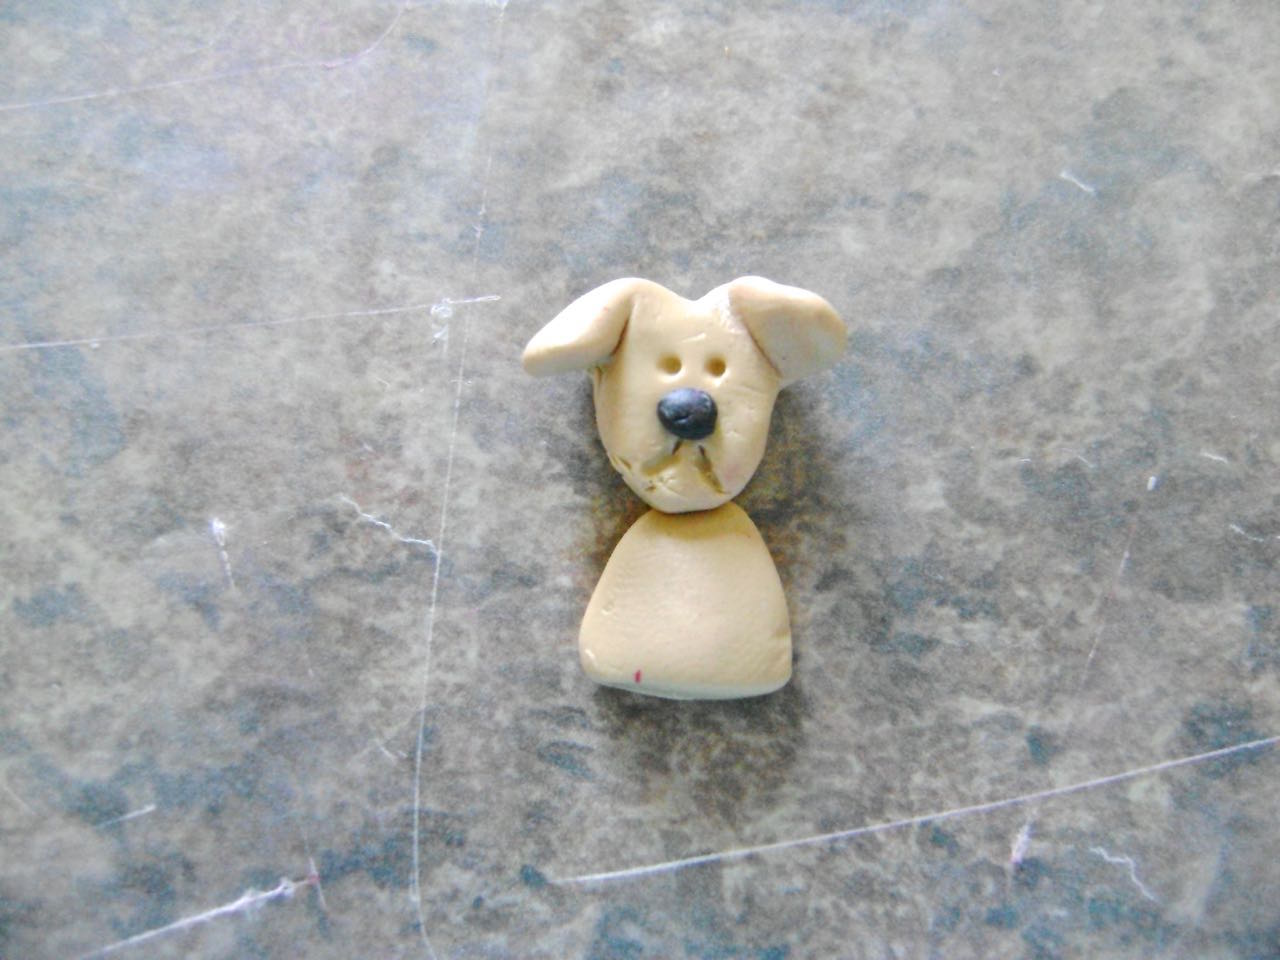 step 9 - Roll a glob of clay to create a small half body and press the head onto it.